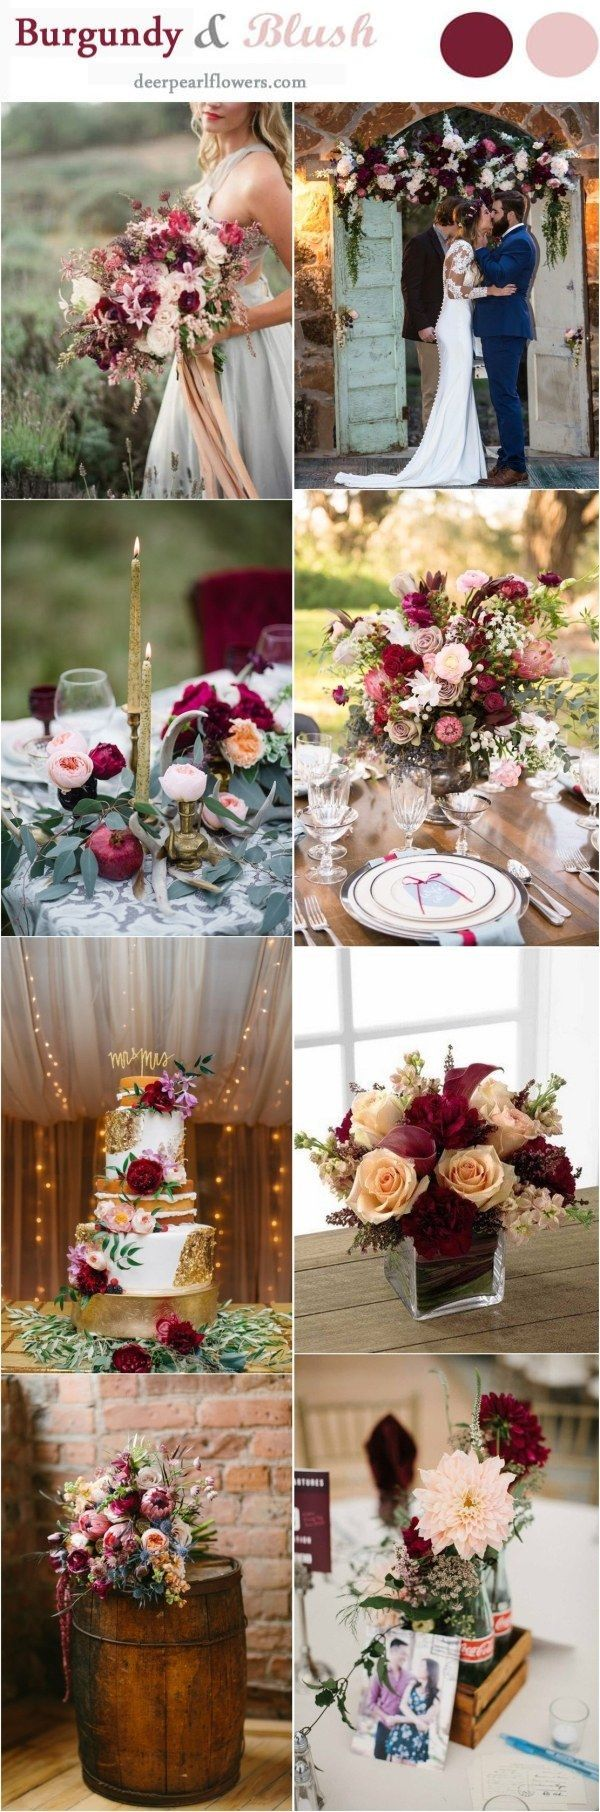 Best 25 wine wedding themes ideas on pinterest maroon for Burgundy wedding reception decorations